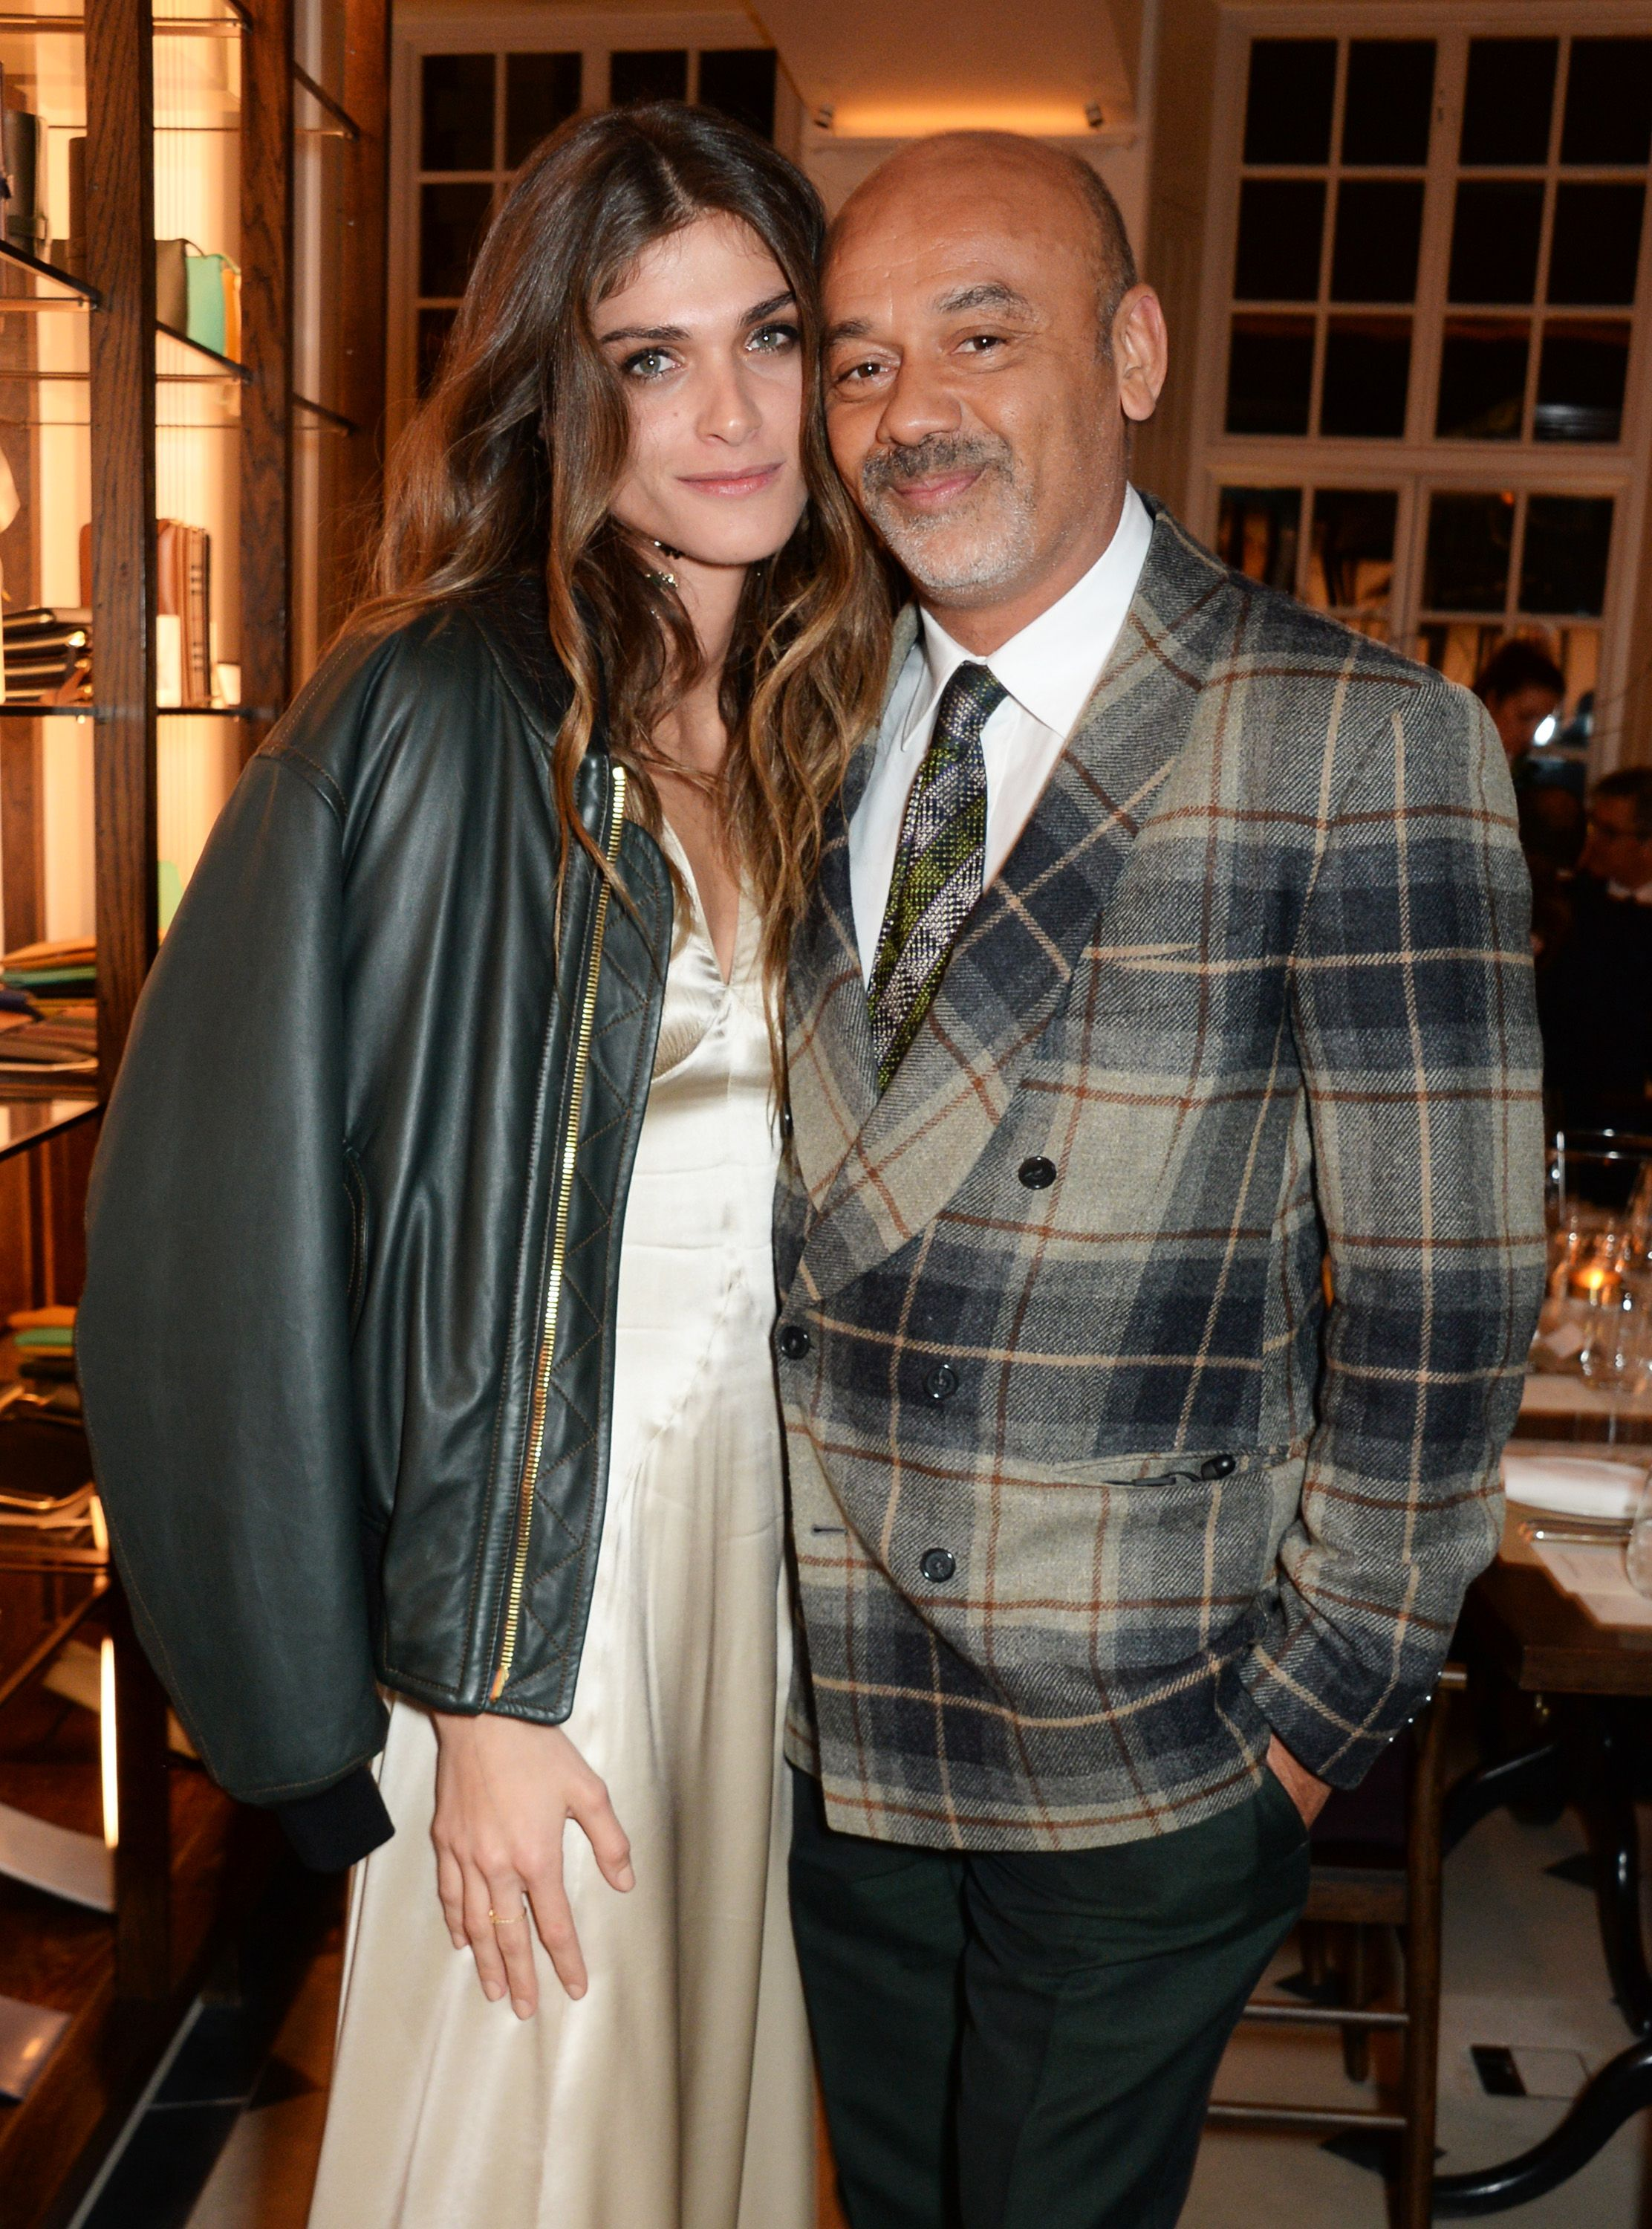 1239b454f25 mytheresa woman Elisa Sednaoui Dellal with her godfather, iconic ...